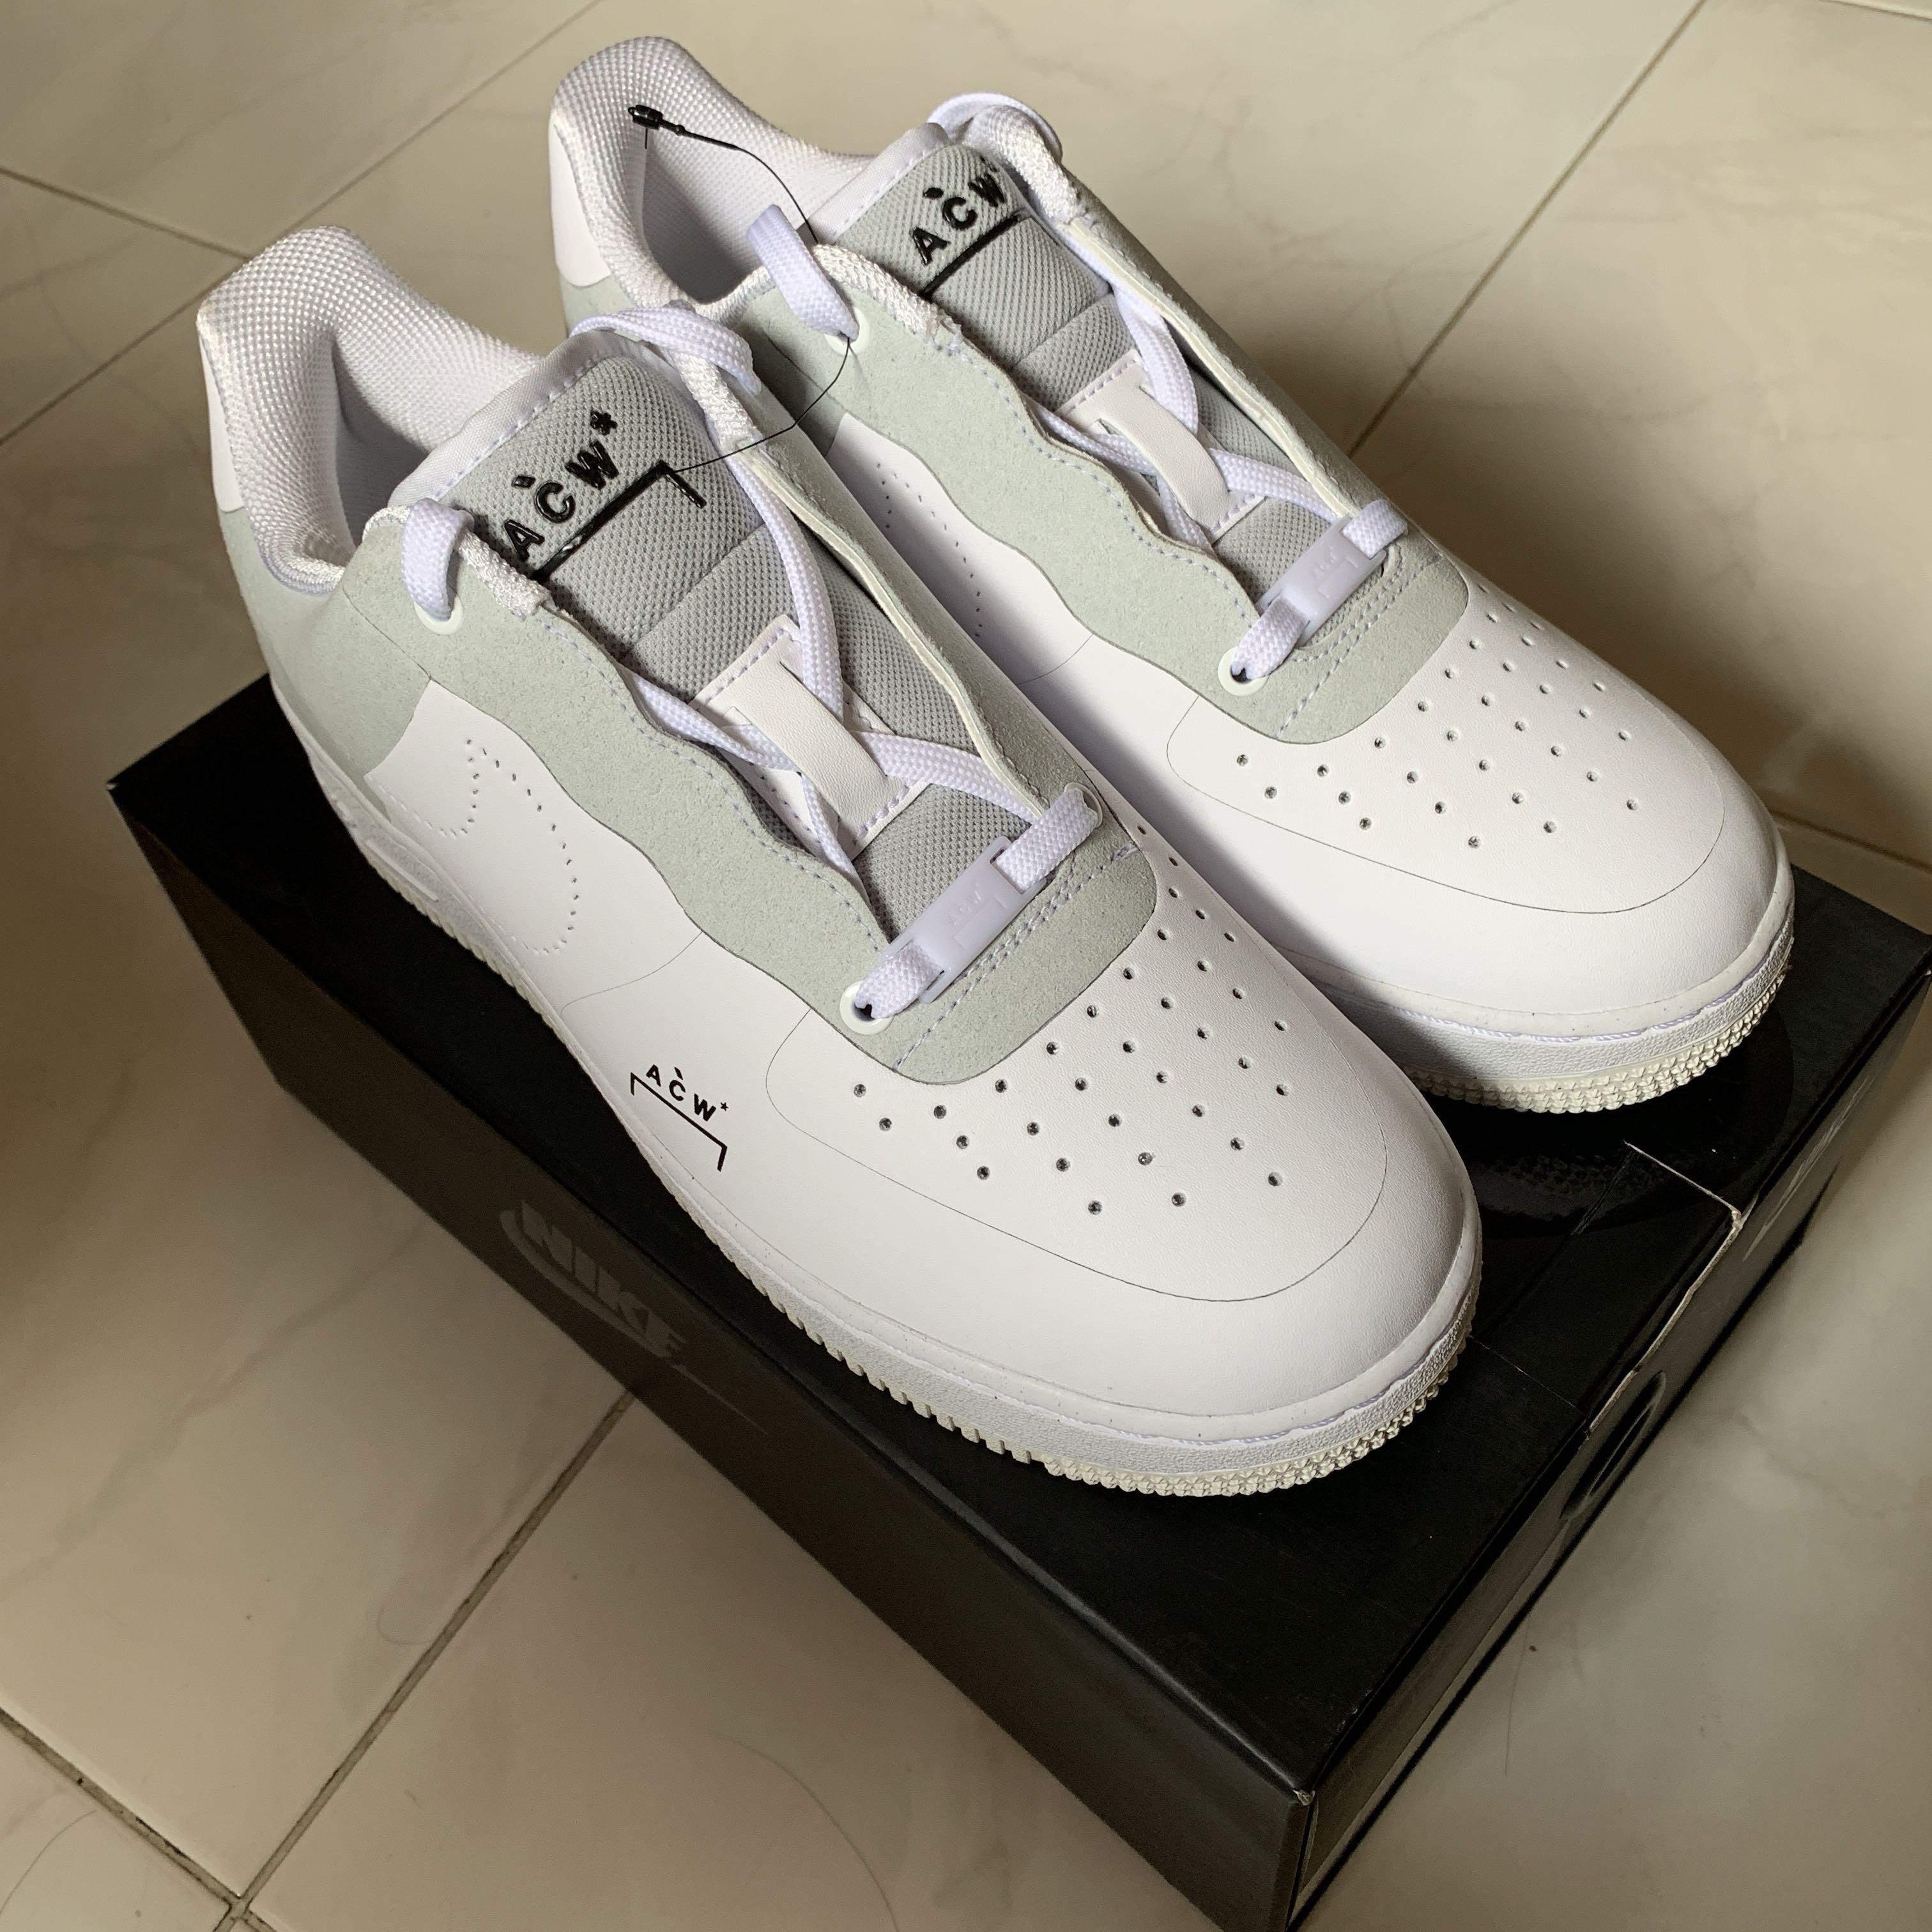 Air Force Nike WhiteMen's On FashionFootwearSneakers 1 Acw yfgb76